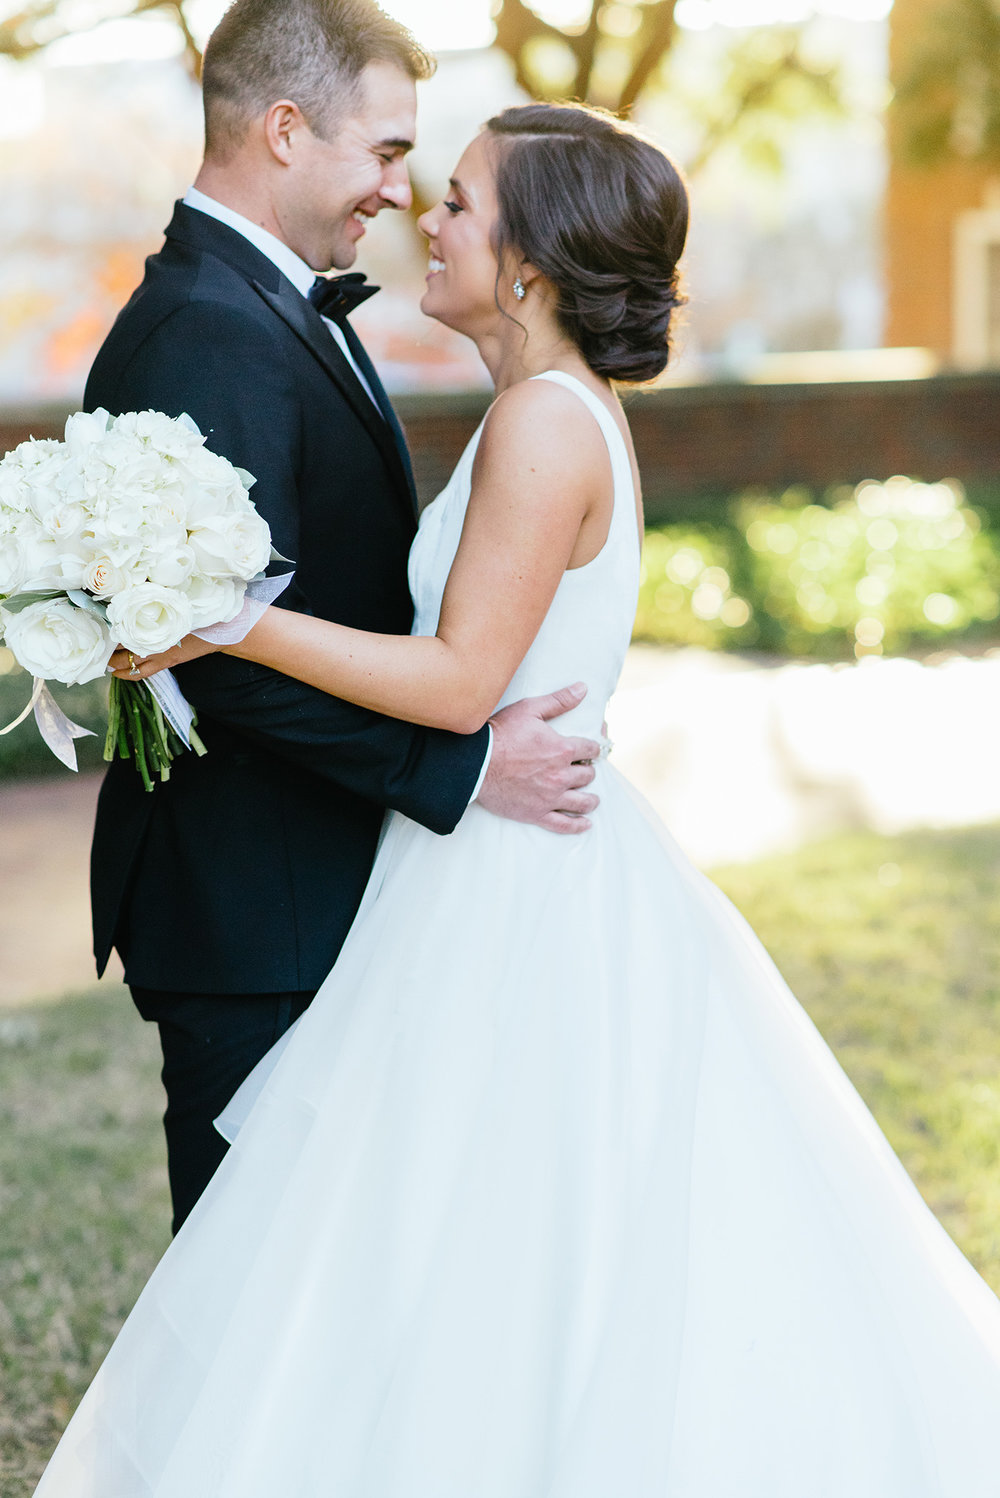 MattAndJulieWeddings-PerkensChapelWedding-RoomonMain-Alyssa+Chris230.jpg